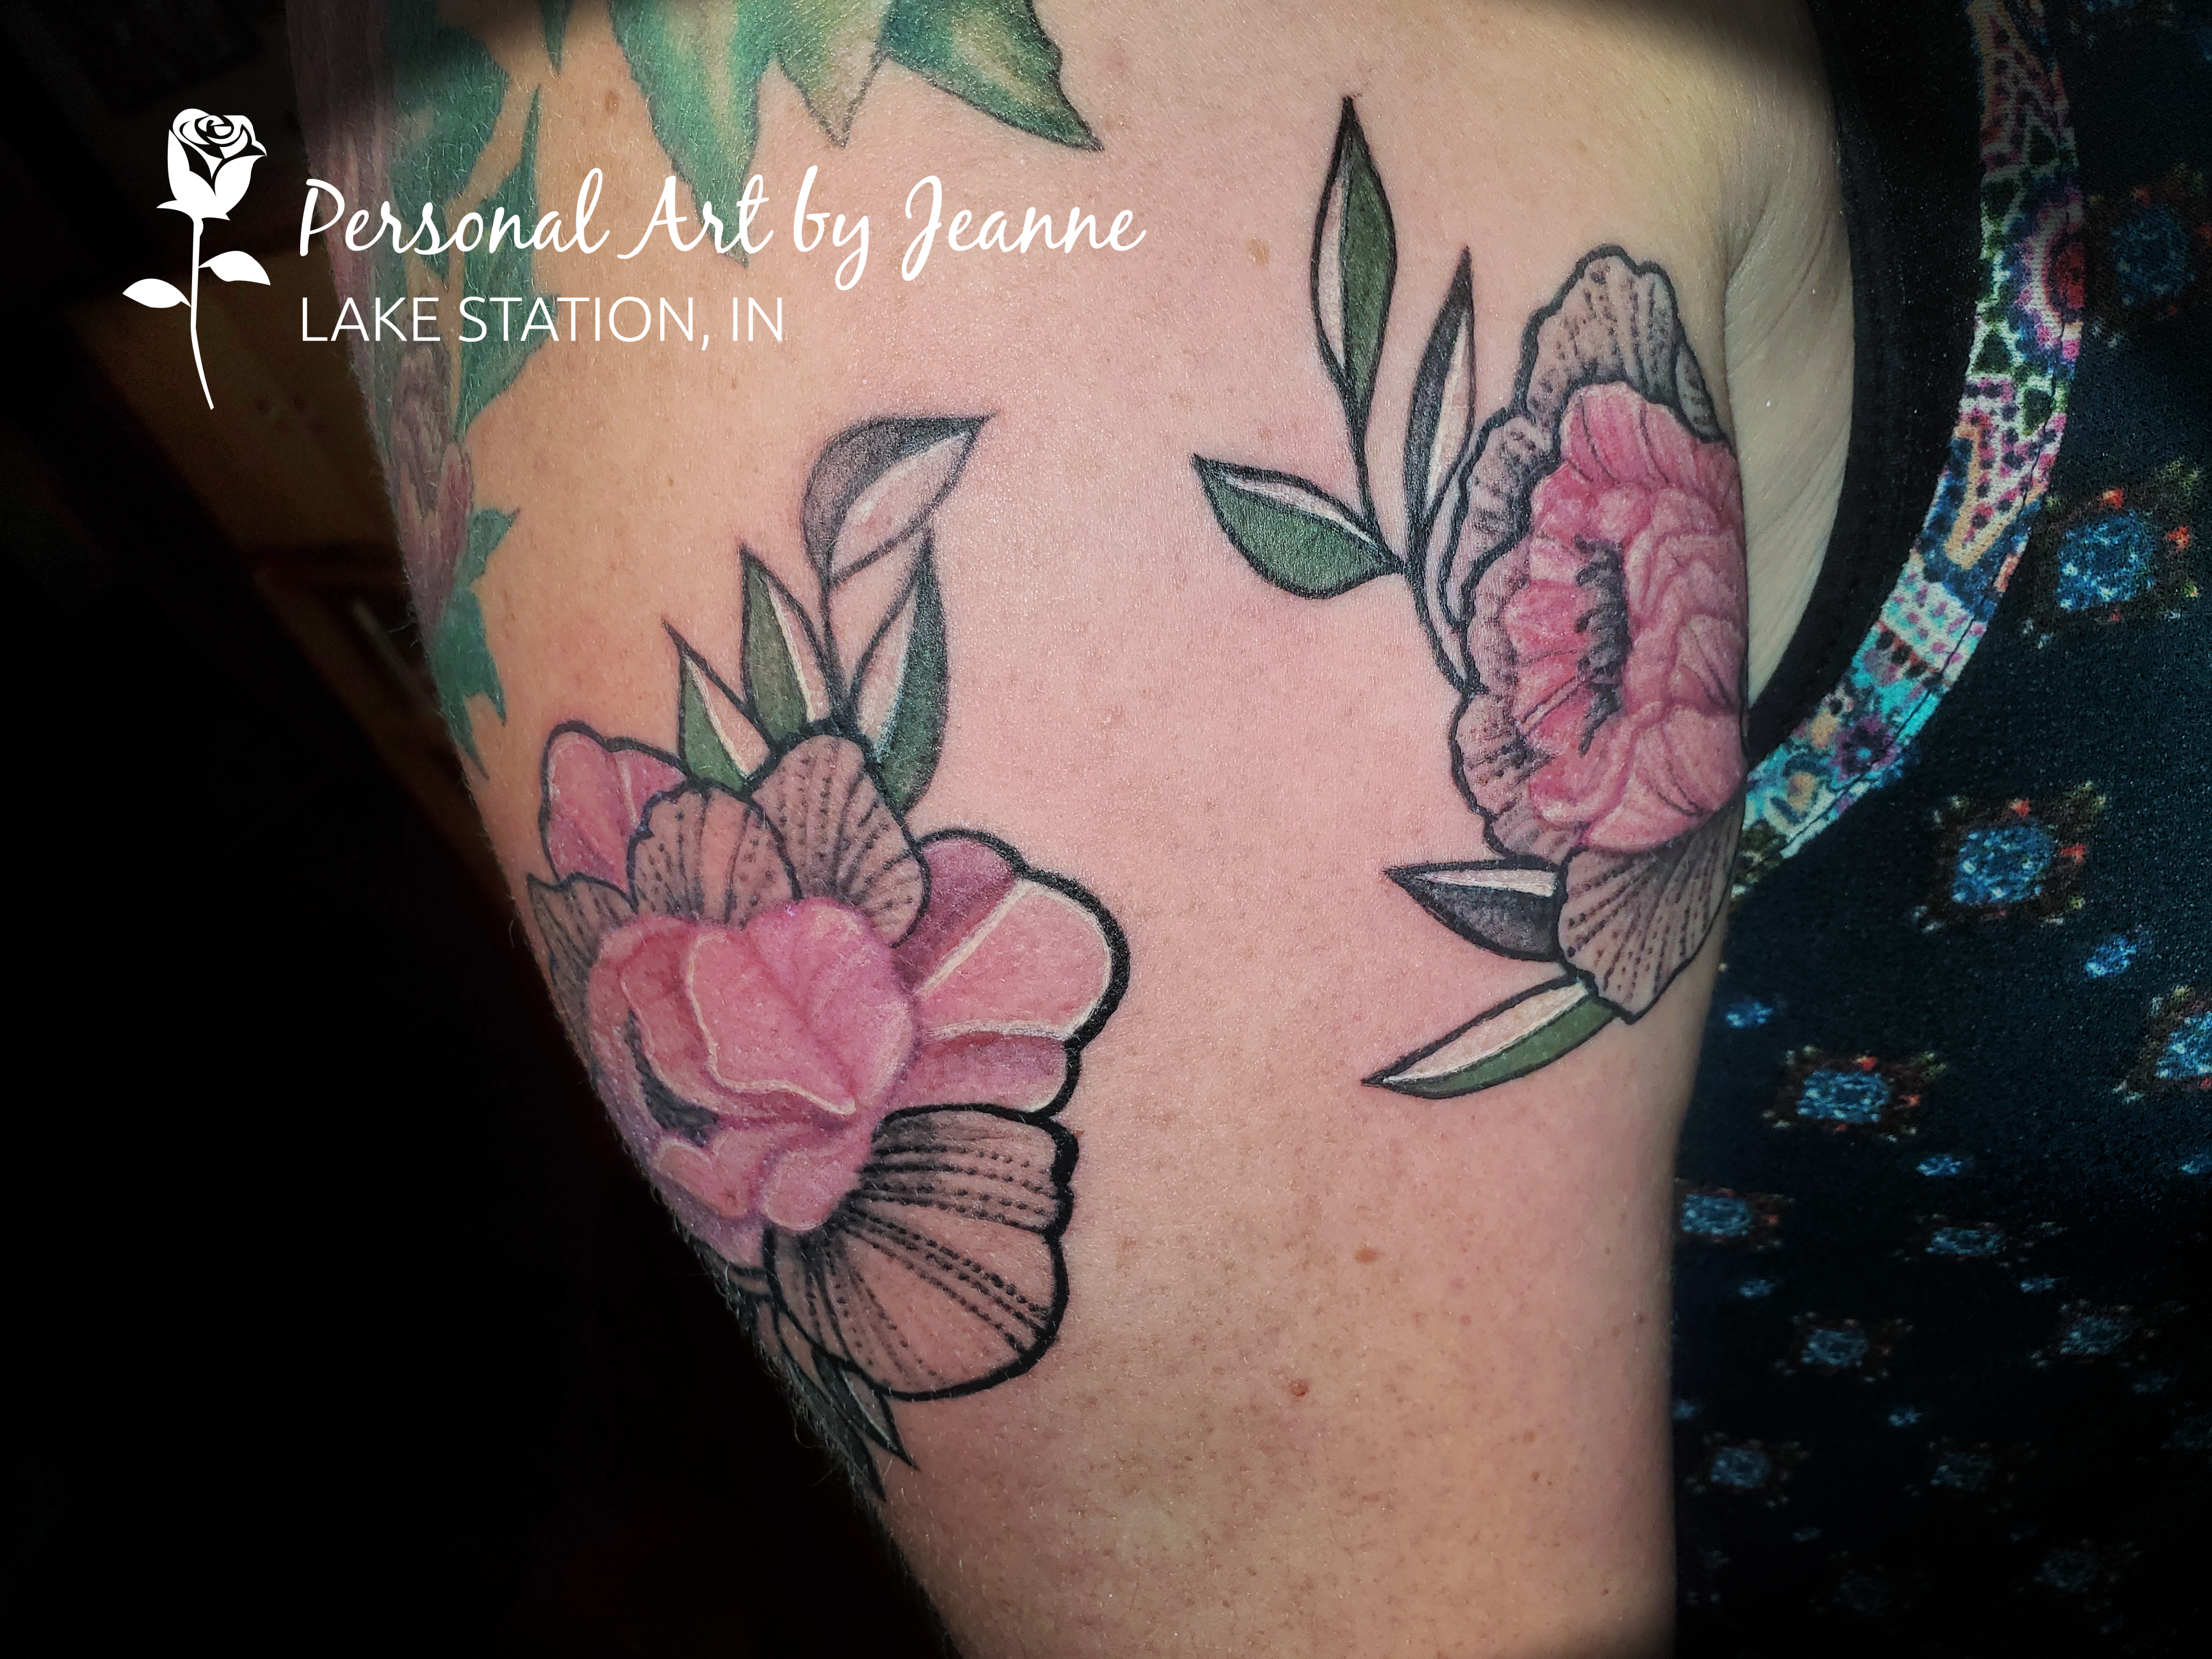 peony tattoos on an arm done by Jeanne at Personal Art